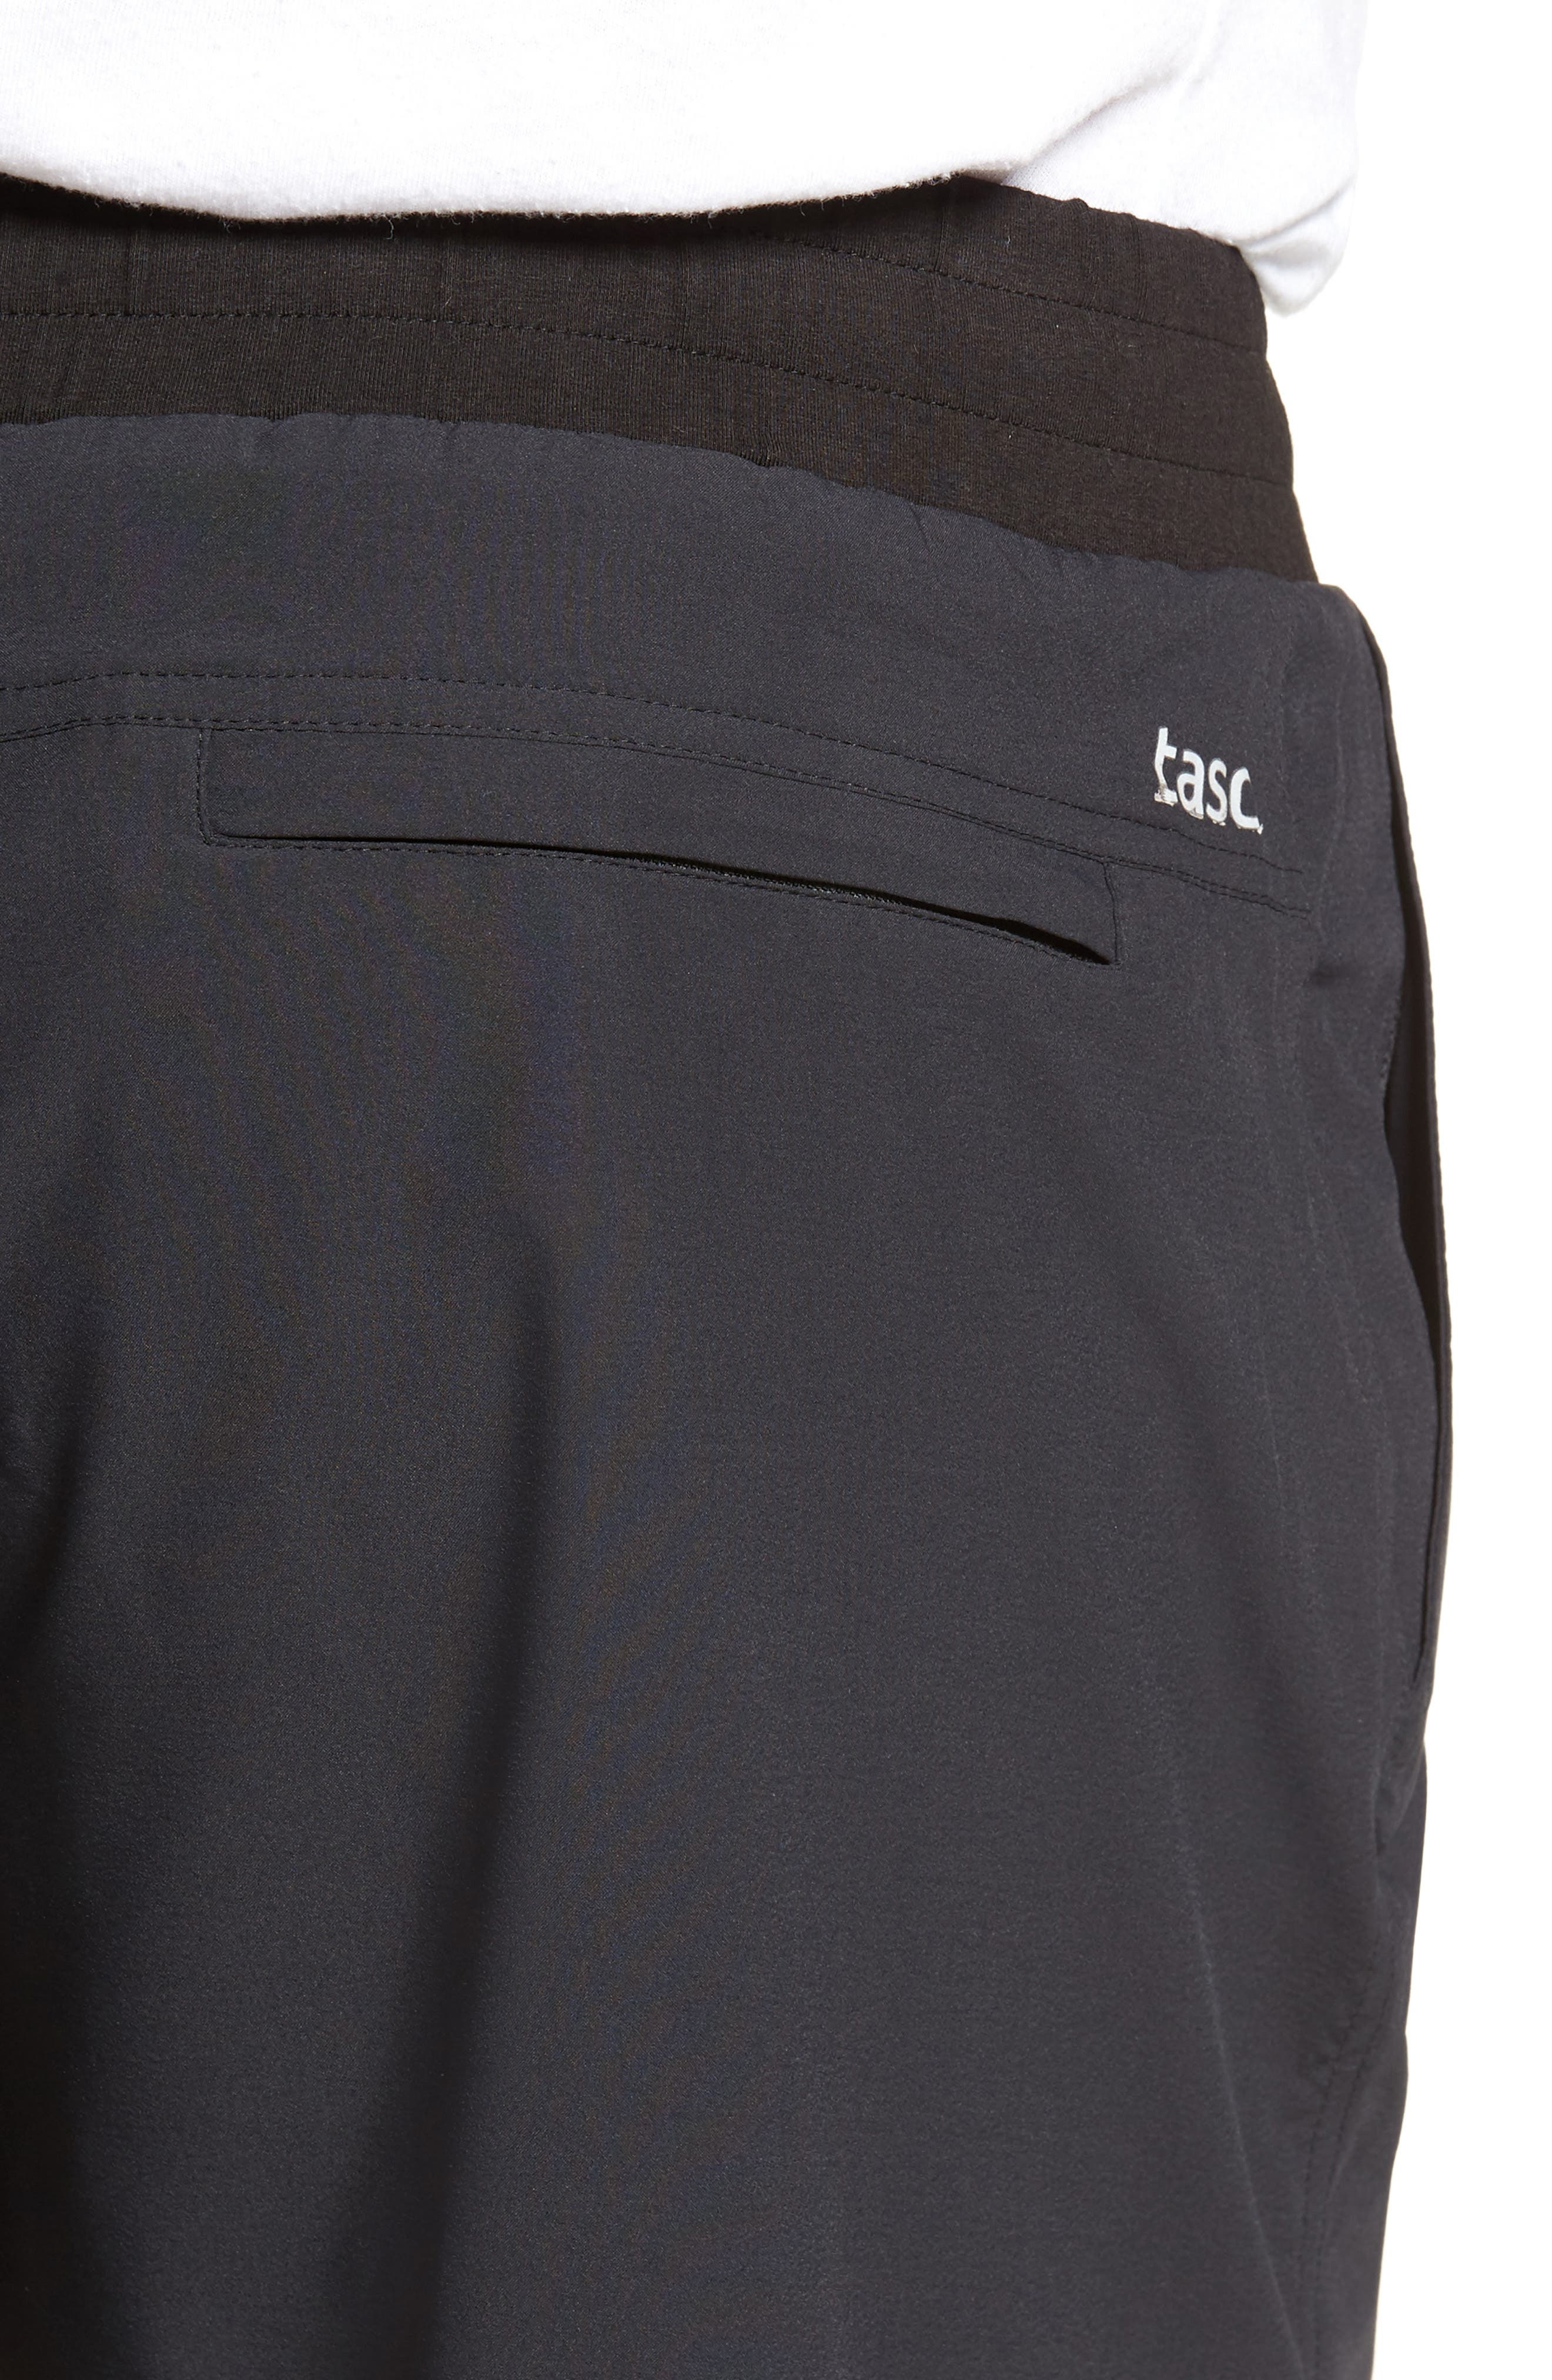 Charge Water Resistant Athletic Shorts,                             Alternate thumbnail 4, color,                             BLACK